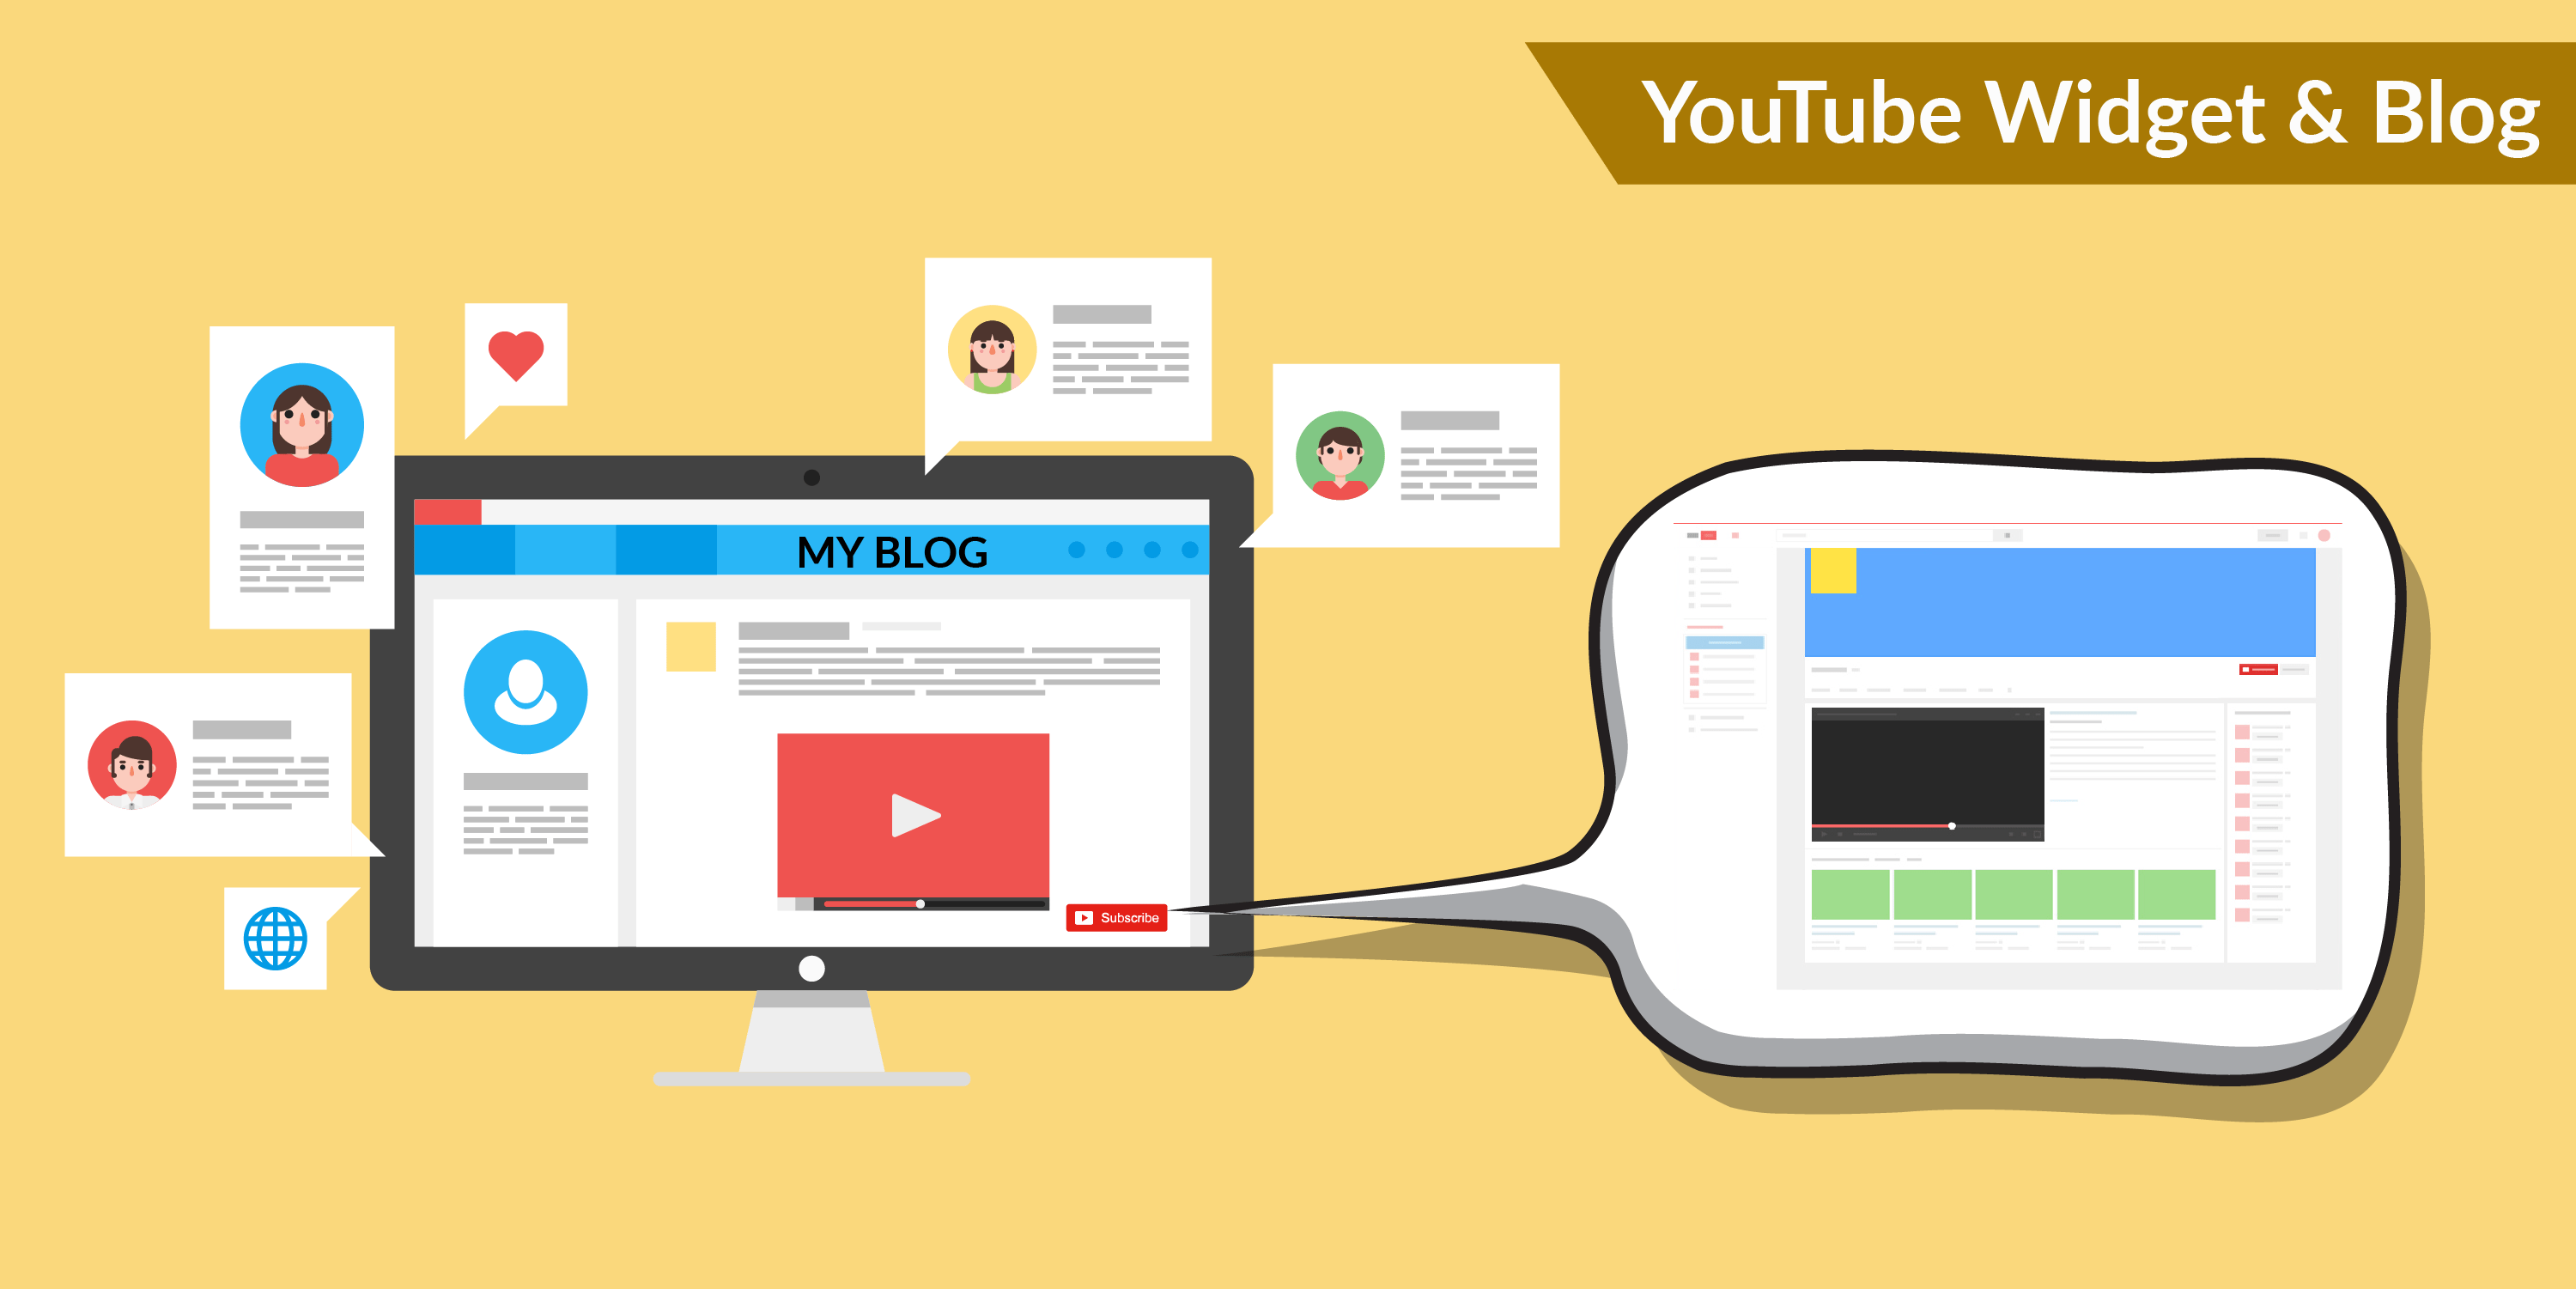 YOUTUBE WIDGET & BLOG